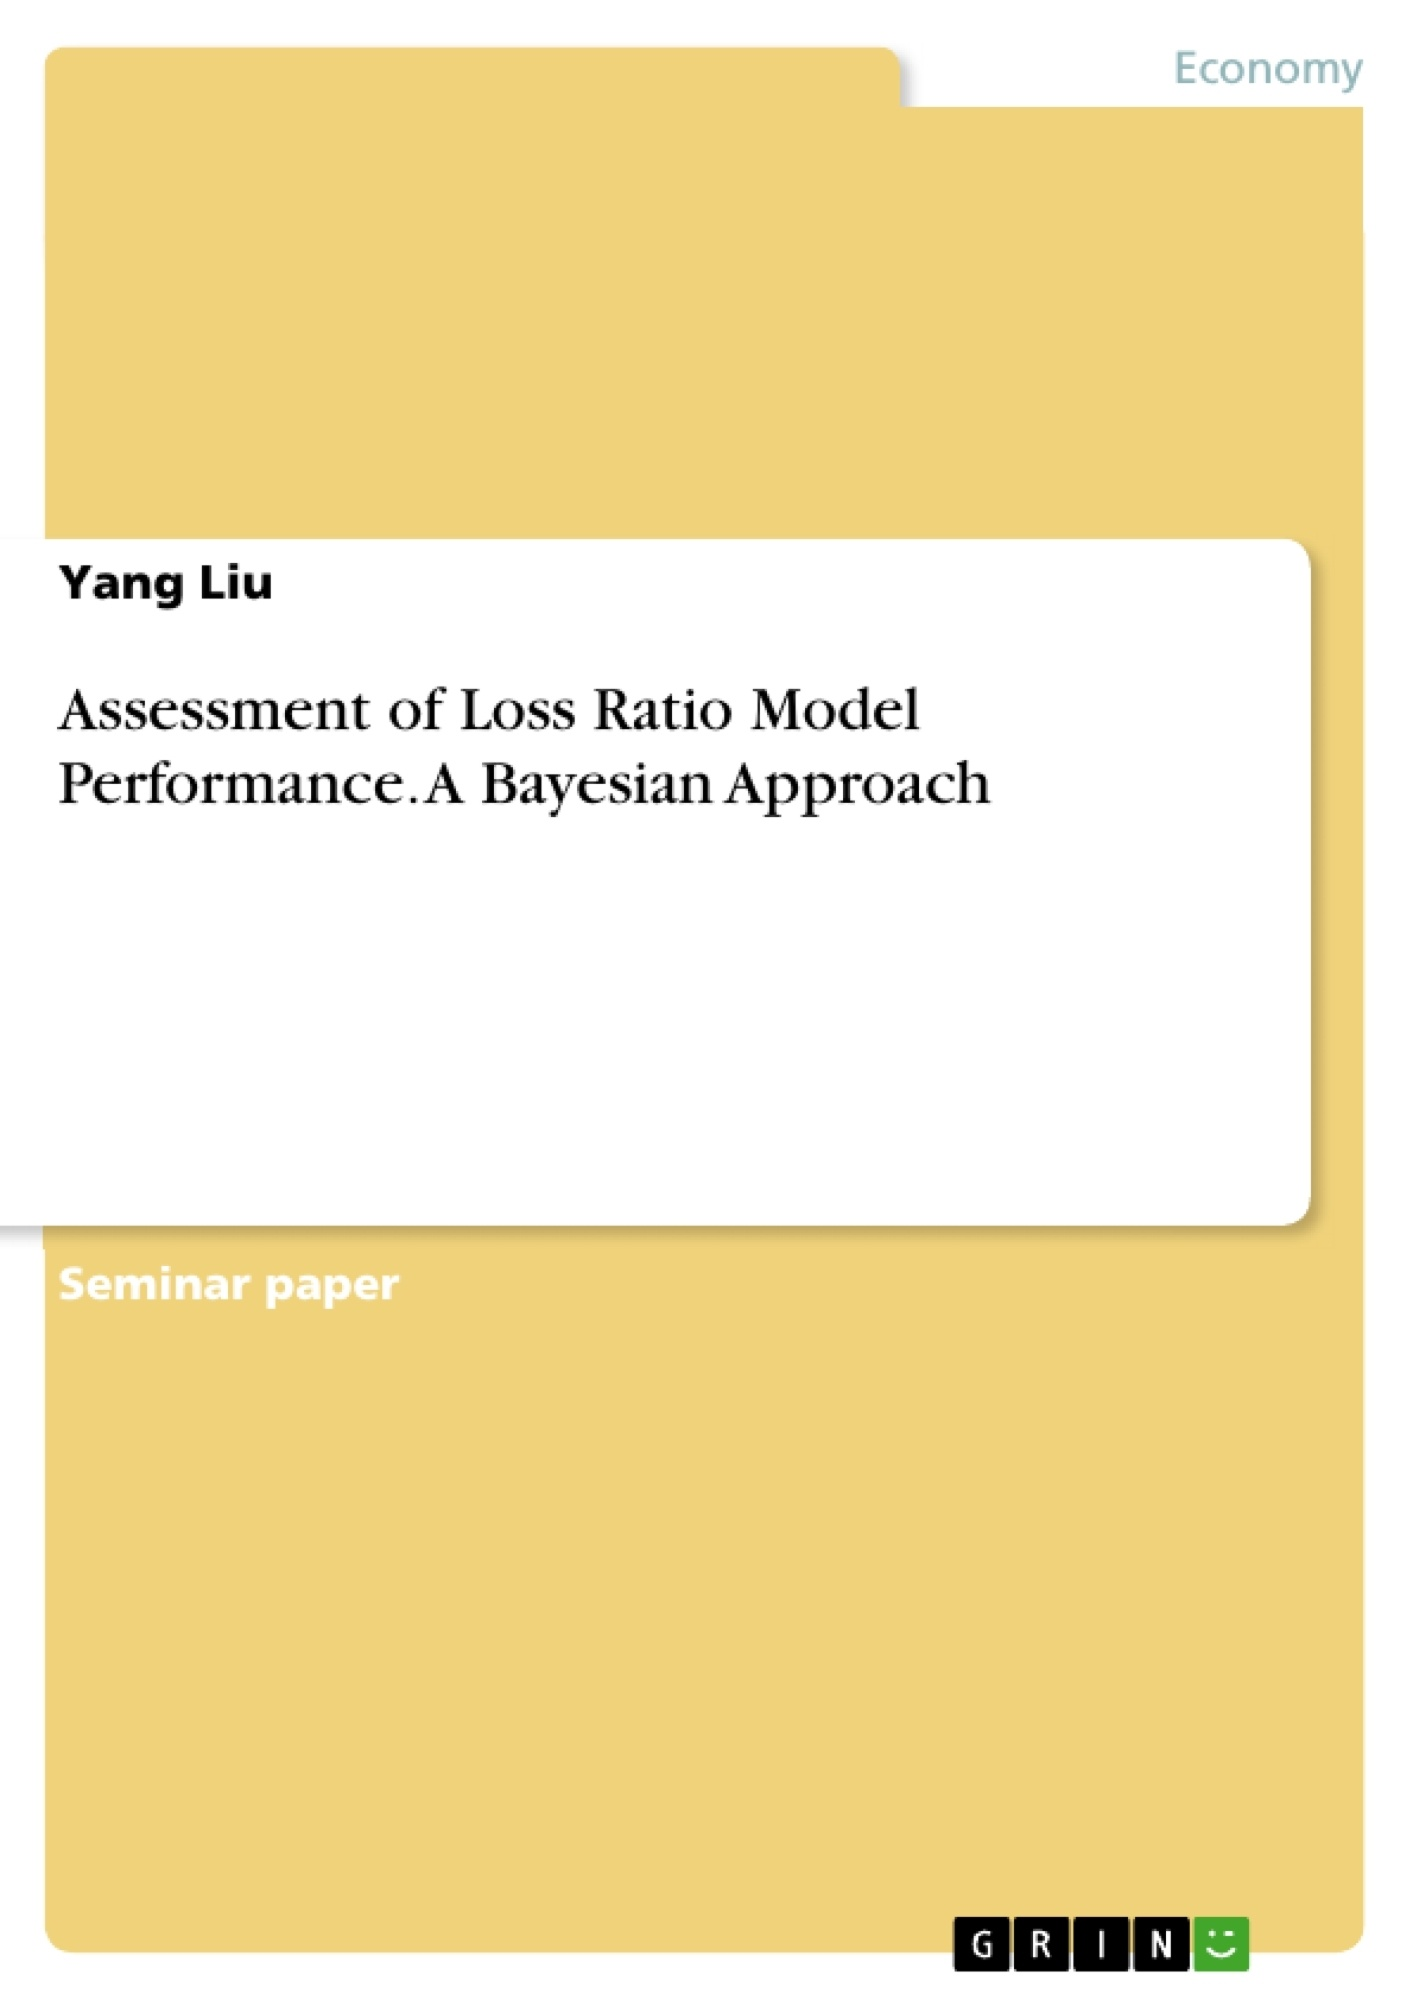 Title: Assessment of Loss Ratio Model Performance. A Bayesian Approach